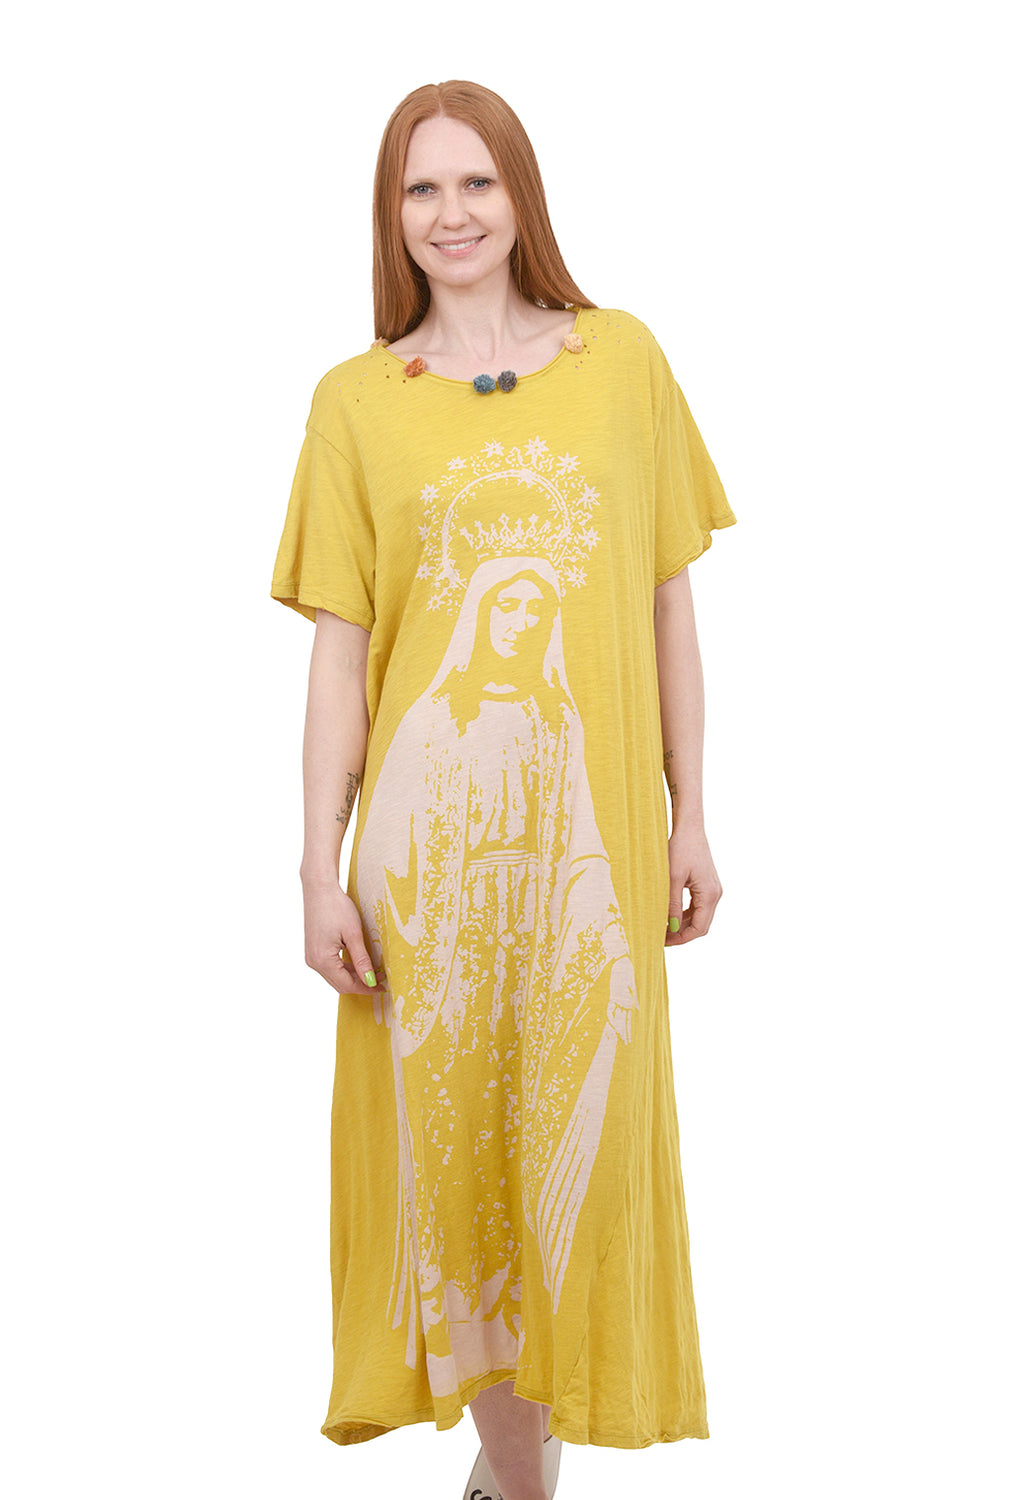 Magnolia Pearl Crown of Our Lady Dress, Pina Yellow One Size Yellow